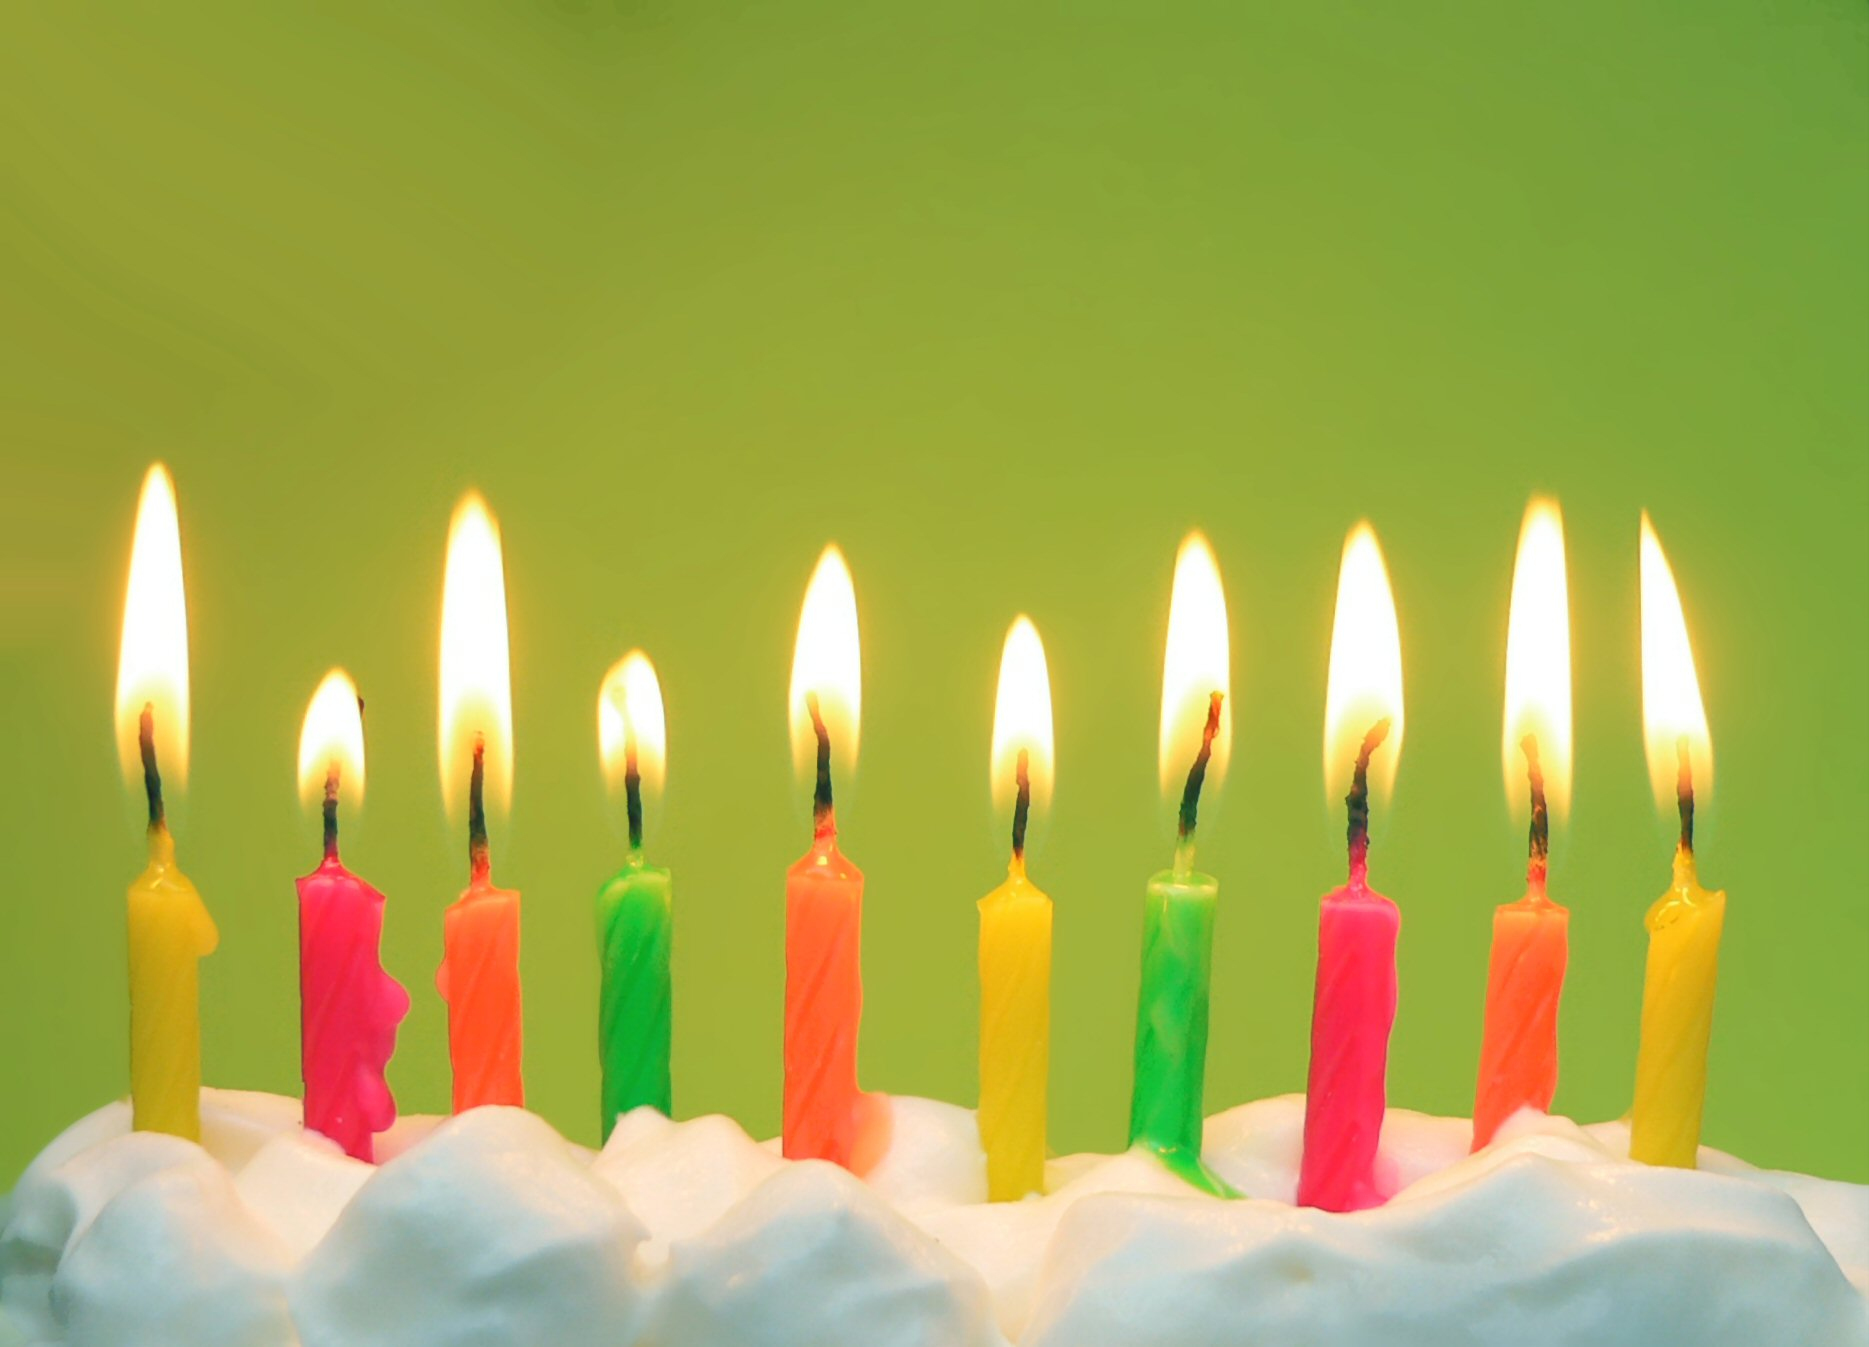 birthday candles wallpaper ; Birthday-Candles-Green-Background-Wallpaper